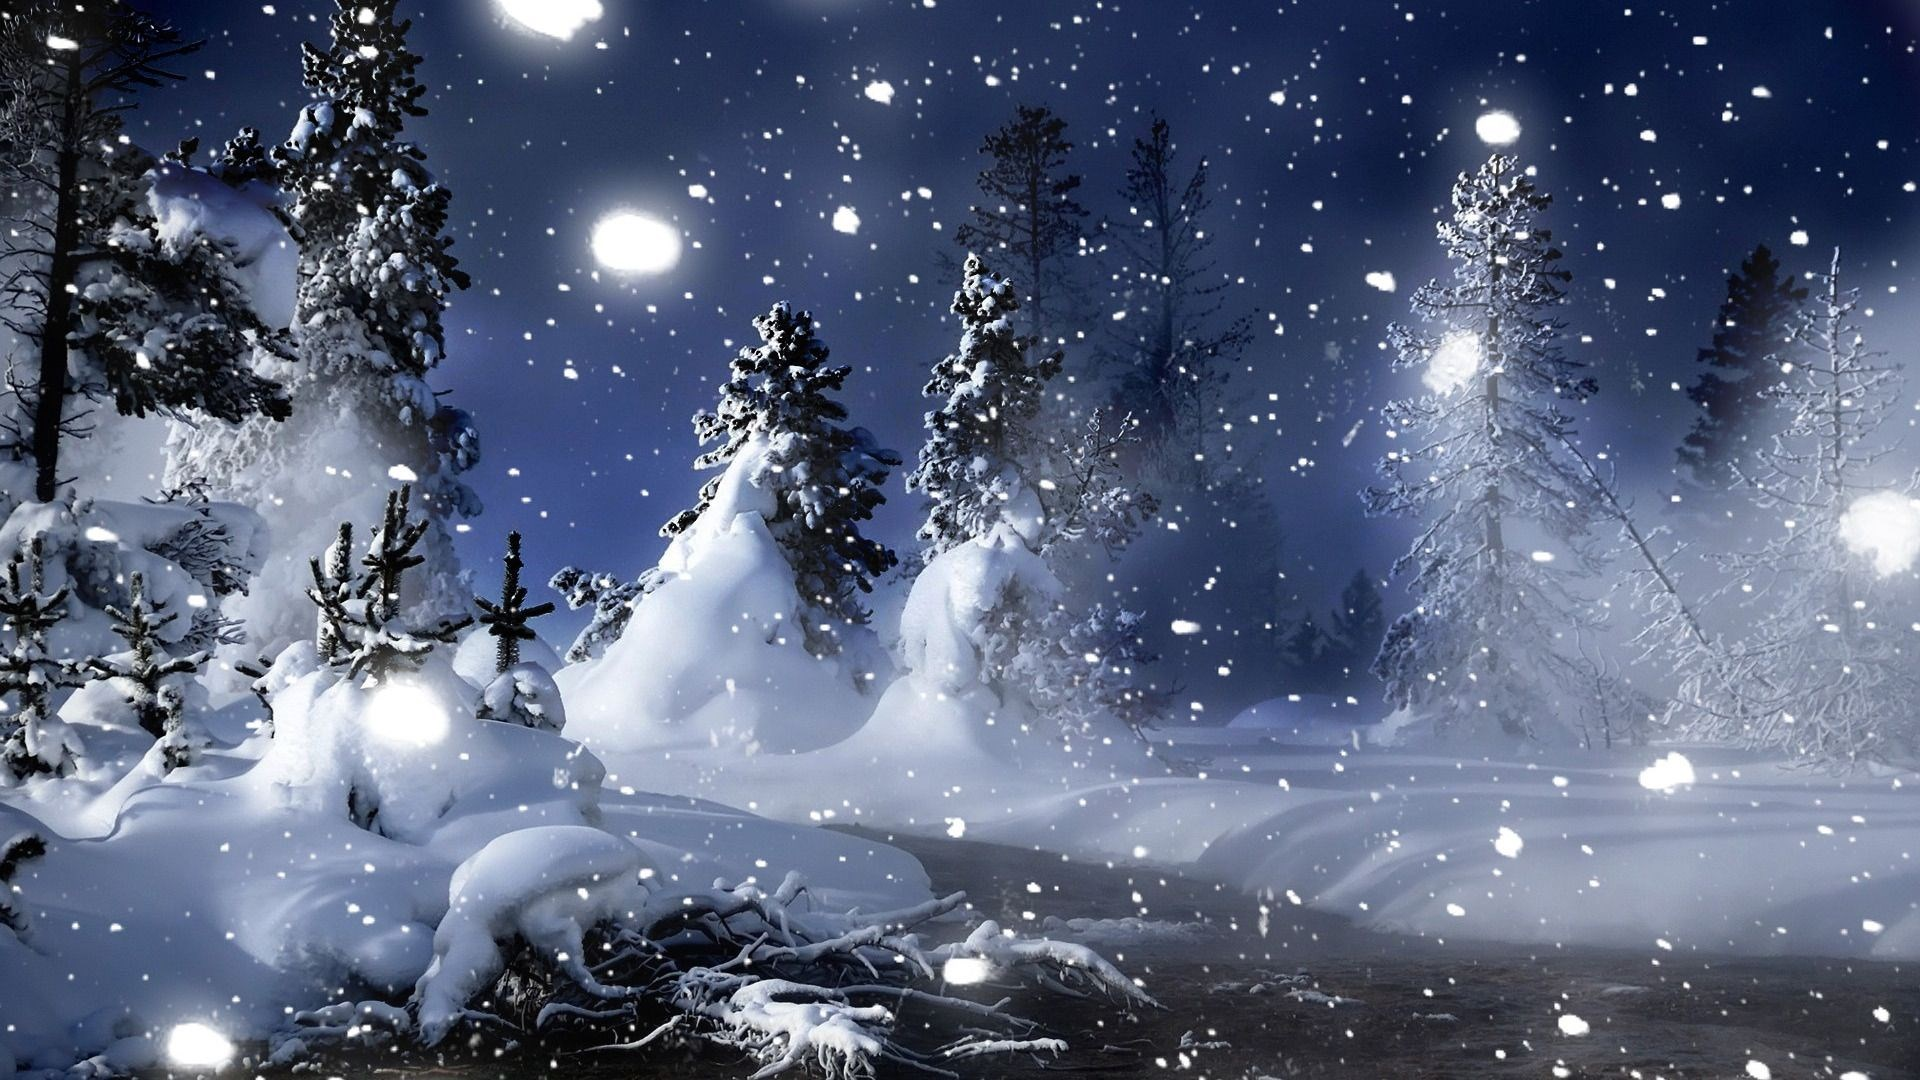 snow-backgrounds-for-desktop-hd-backgrounds-Scout-Holiday-1920-x-1080-wallpaper-wpc9009225